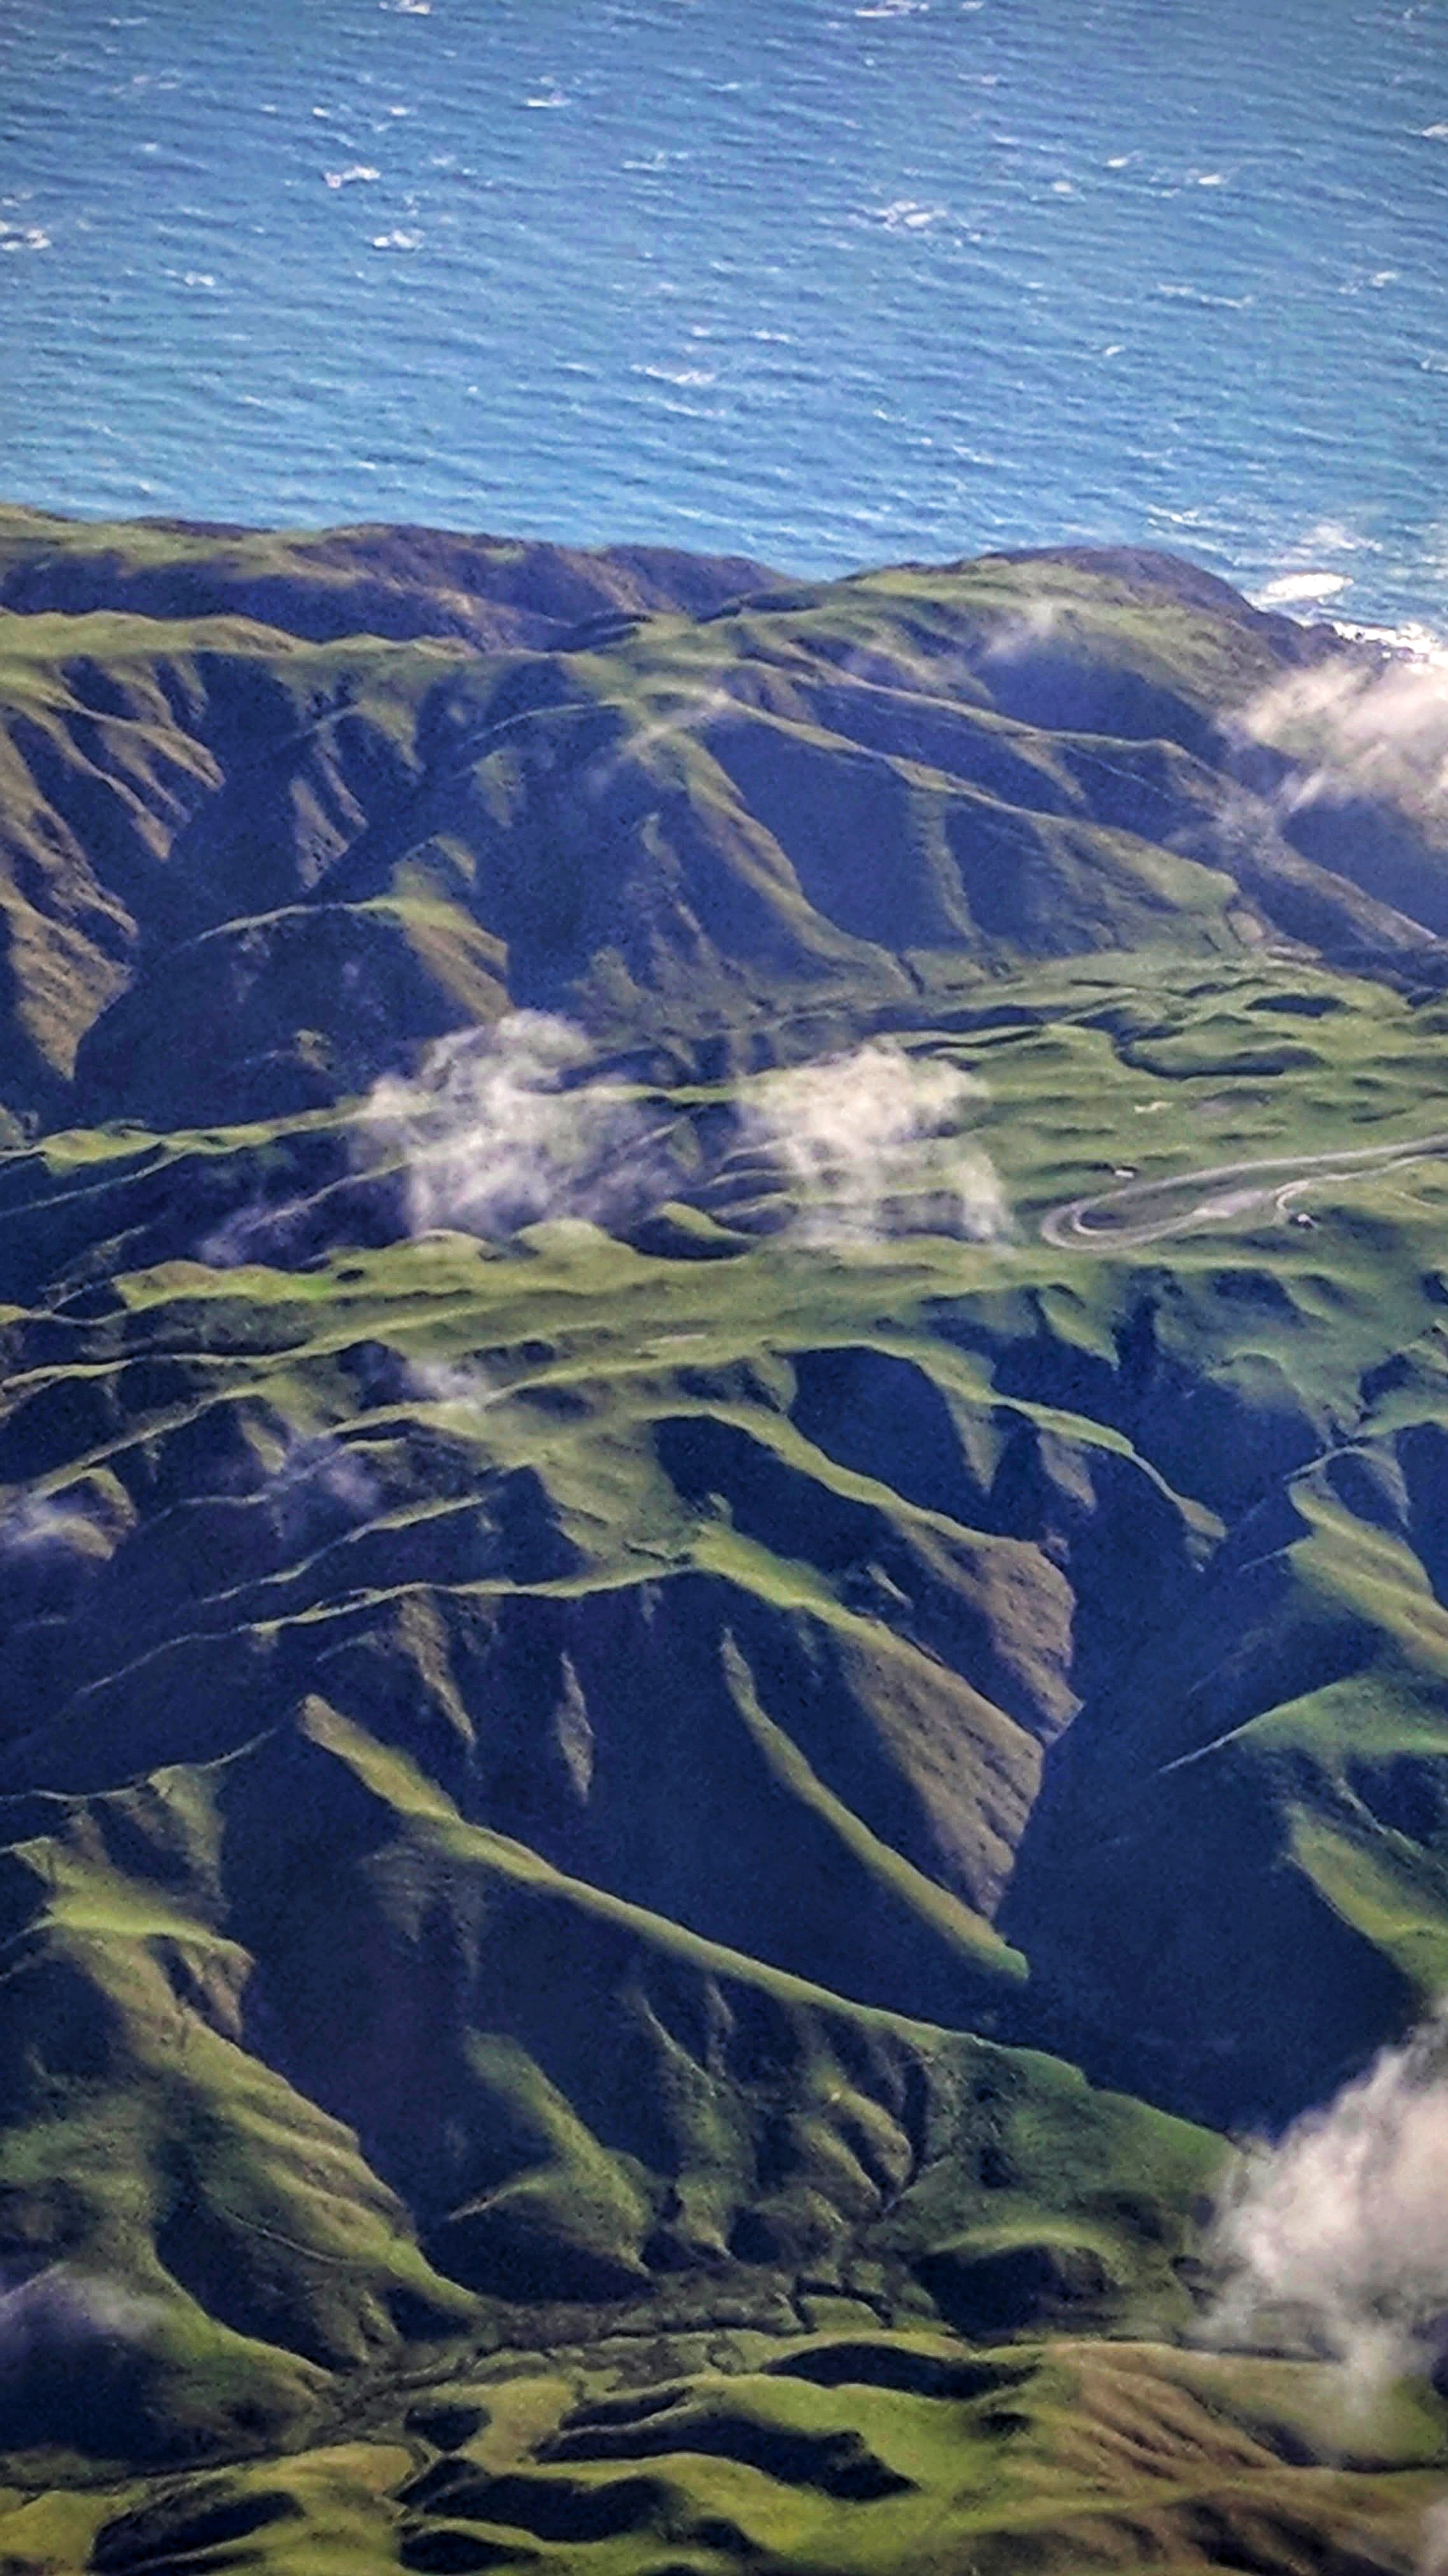 Ripples in the land of Aotearoa New Zealand